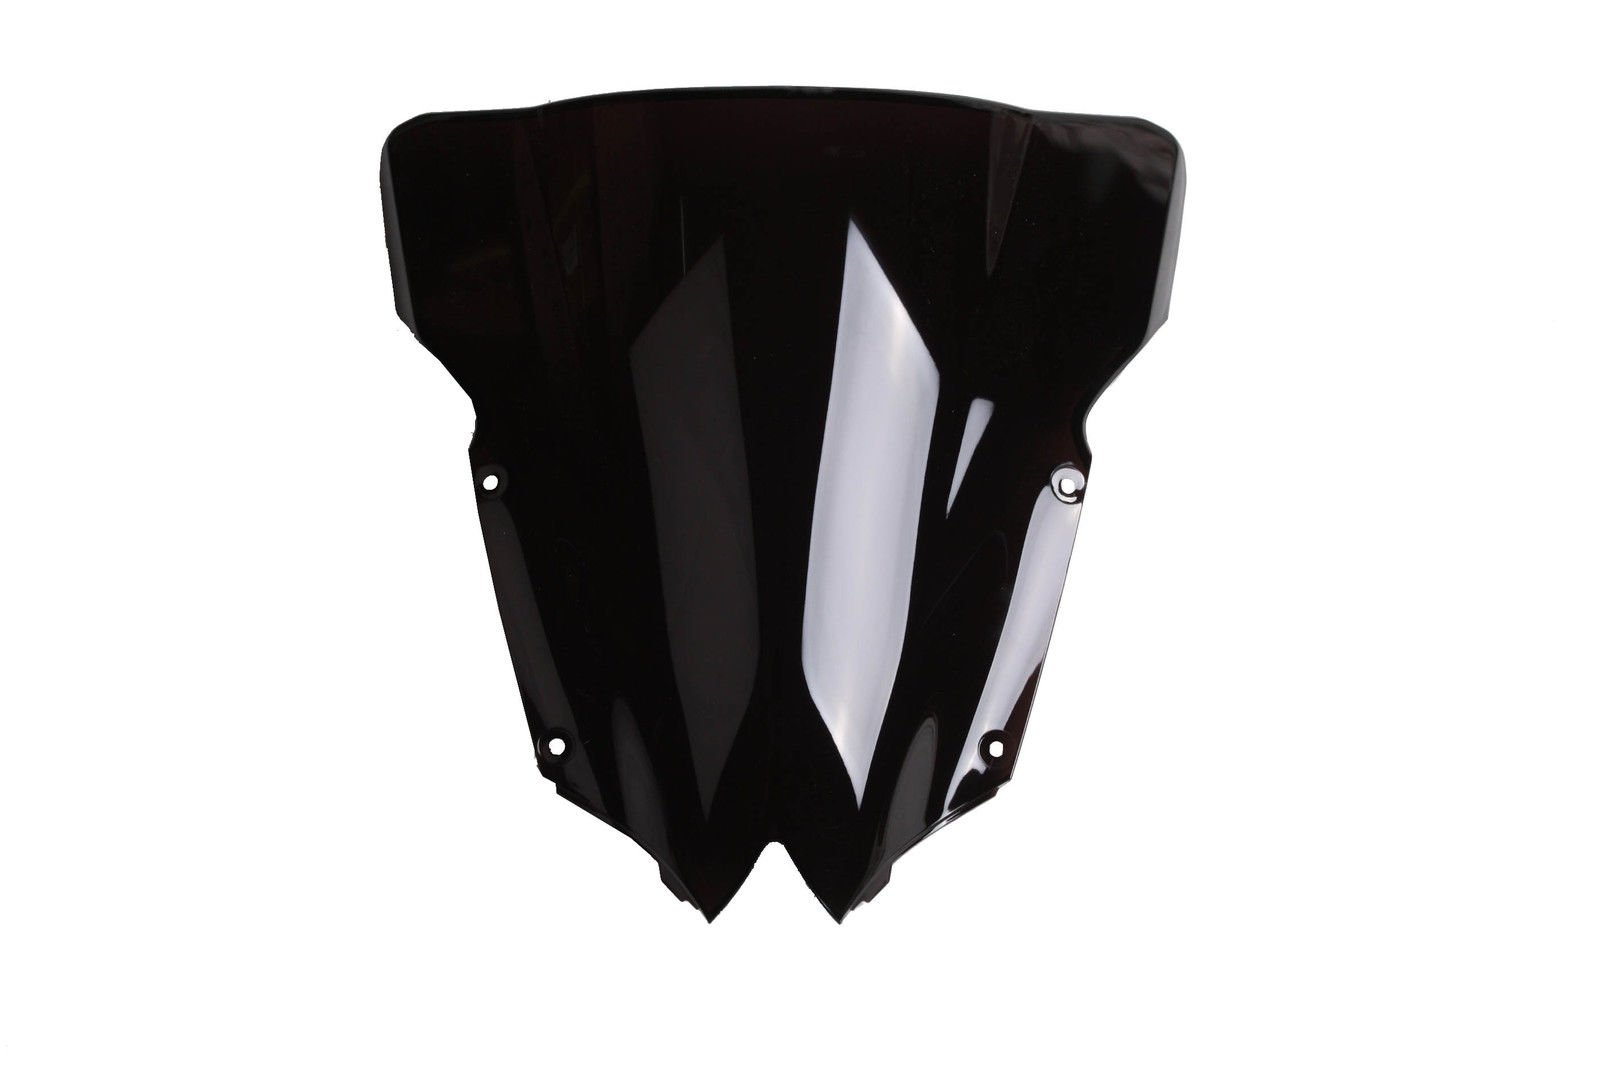 XFMT PMMA Black Double Bubble Windshield Screen For Yamaha YZF R6 YZF-R6 2008-2016